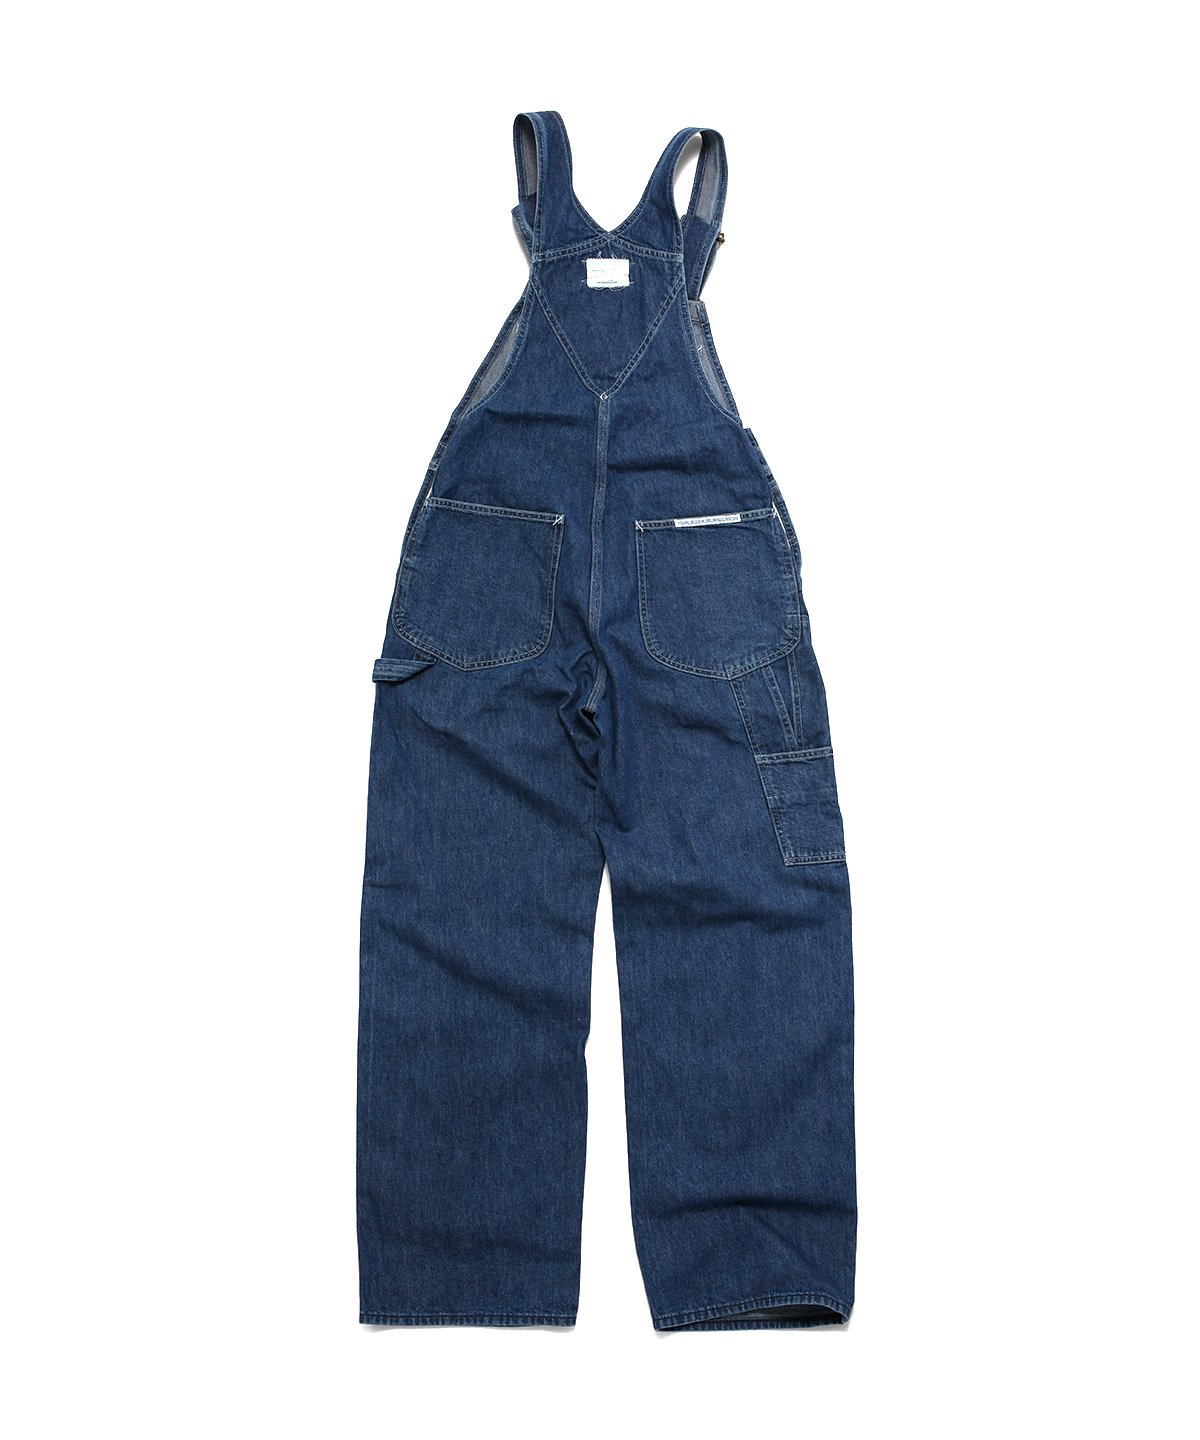 CLASSIC OVERALL (WASHED OUT)